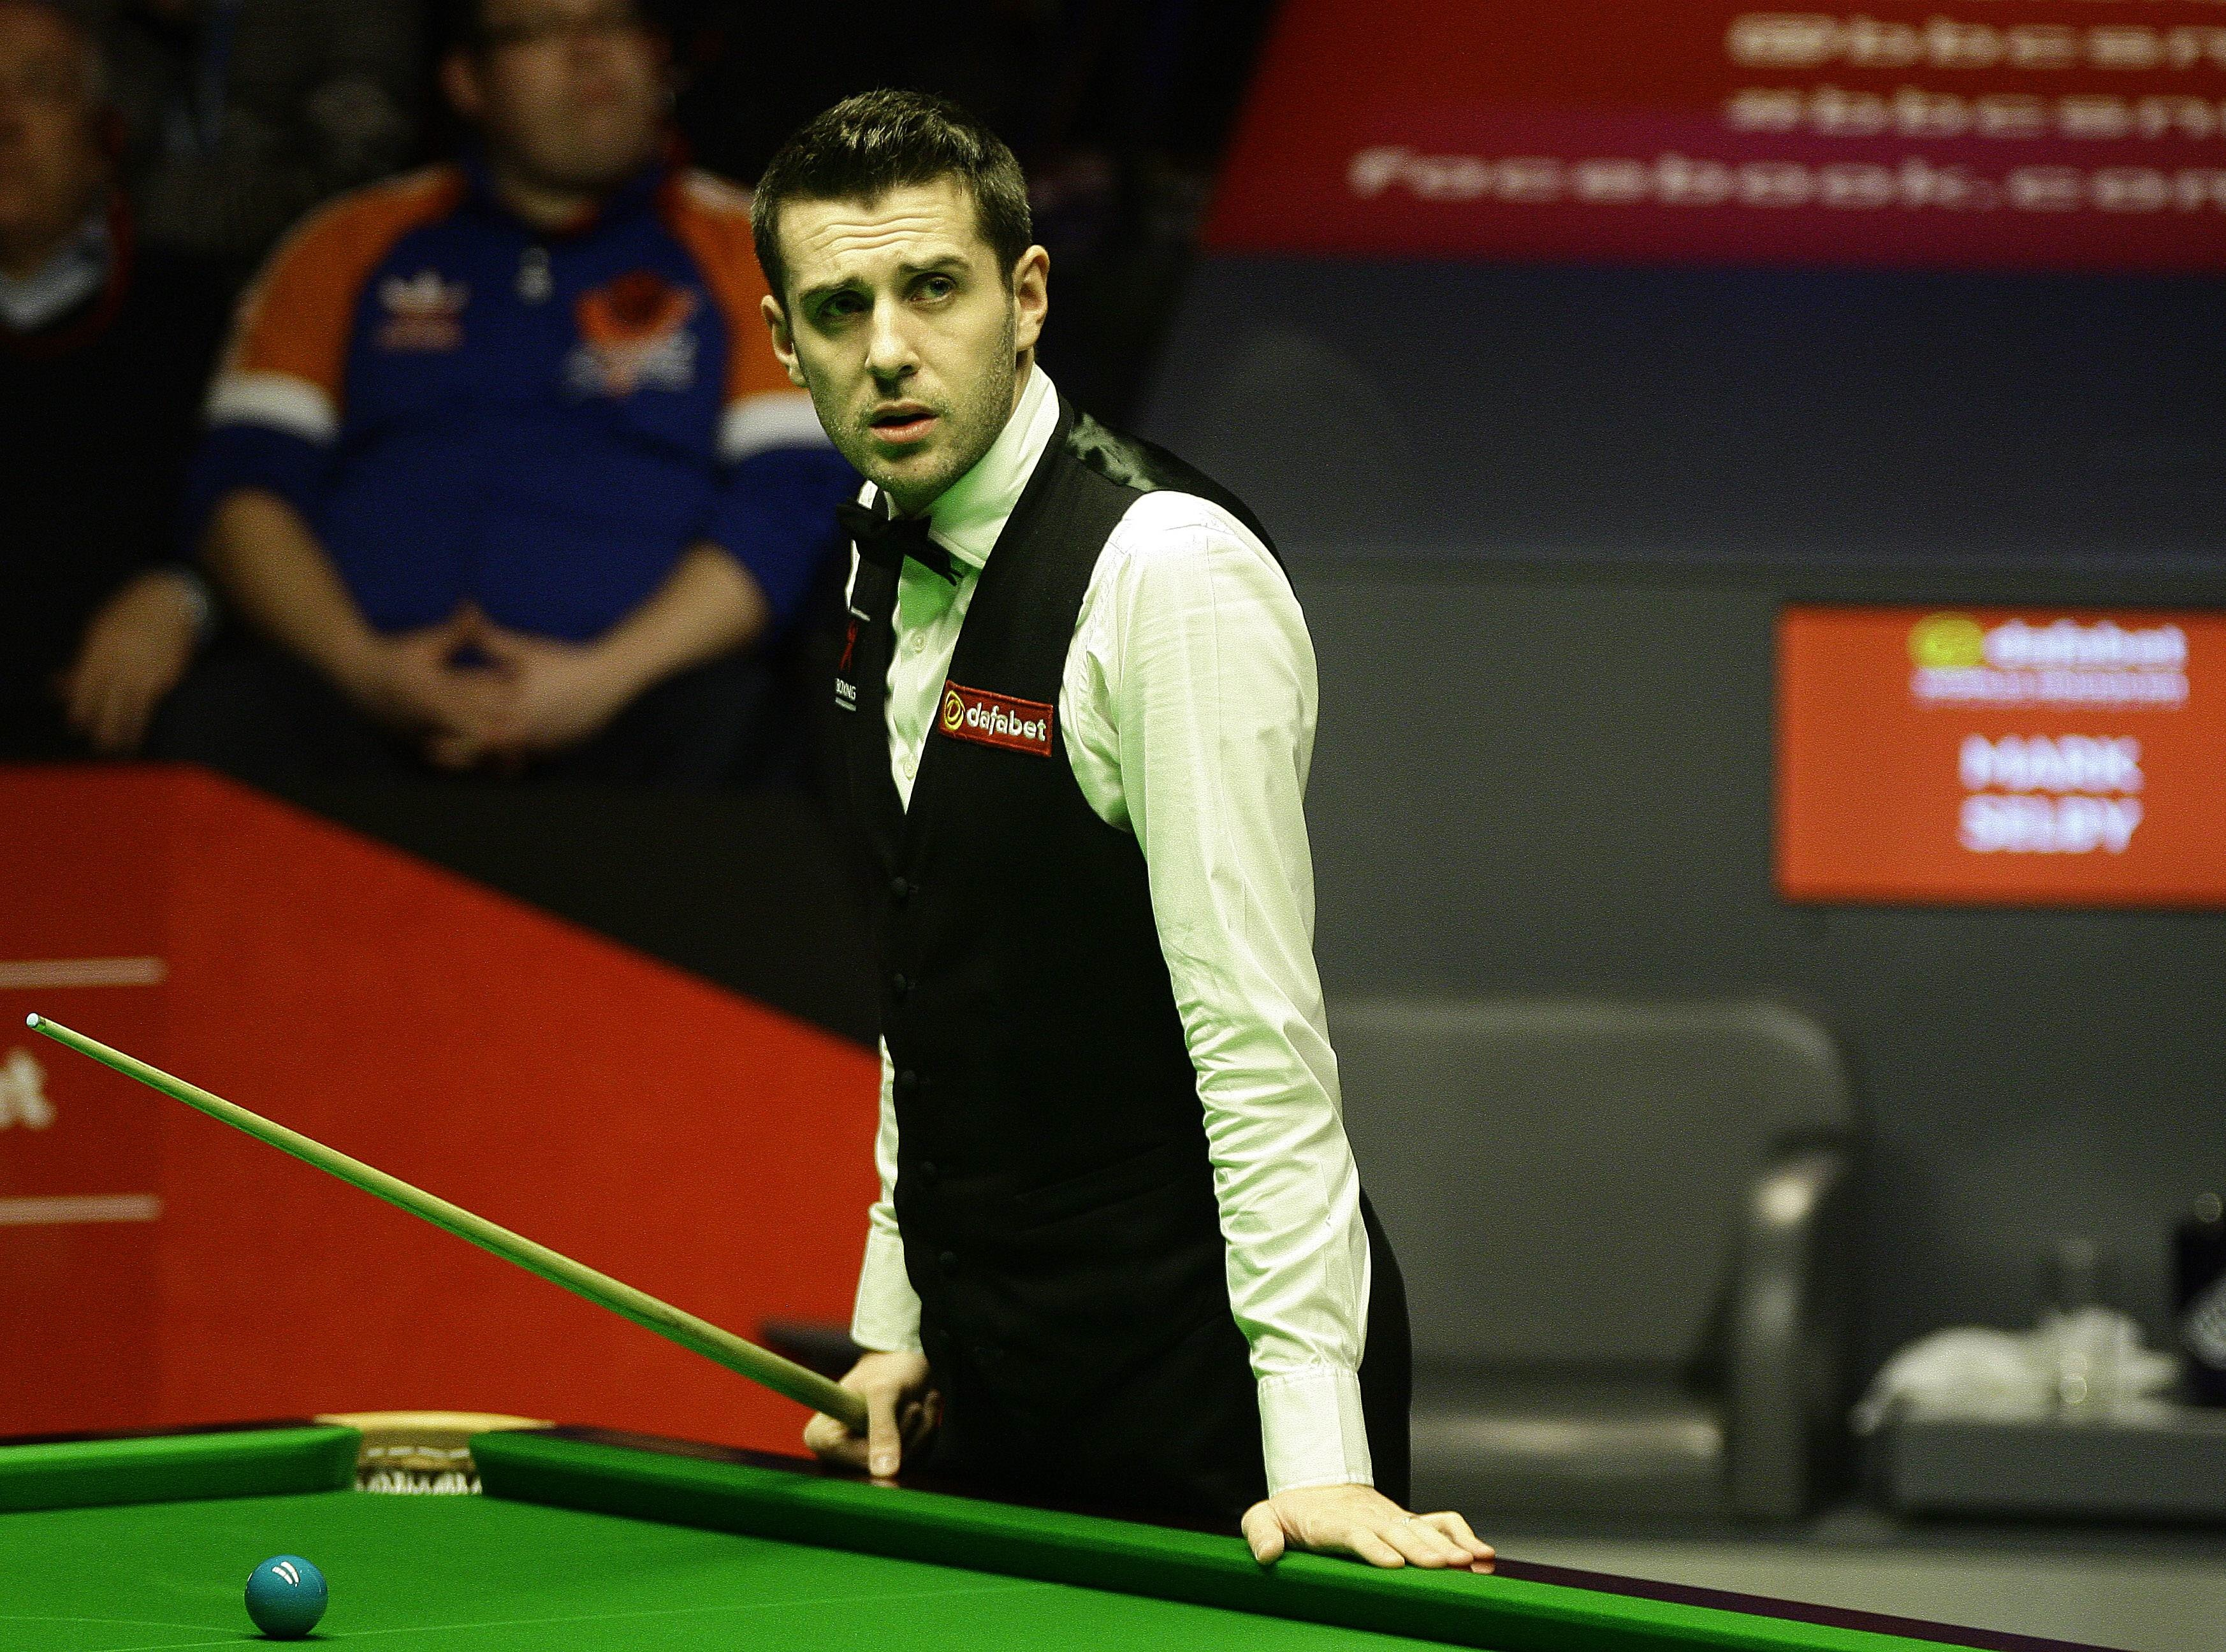 Mark Selby studies a scoreboard at the Crucible.